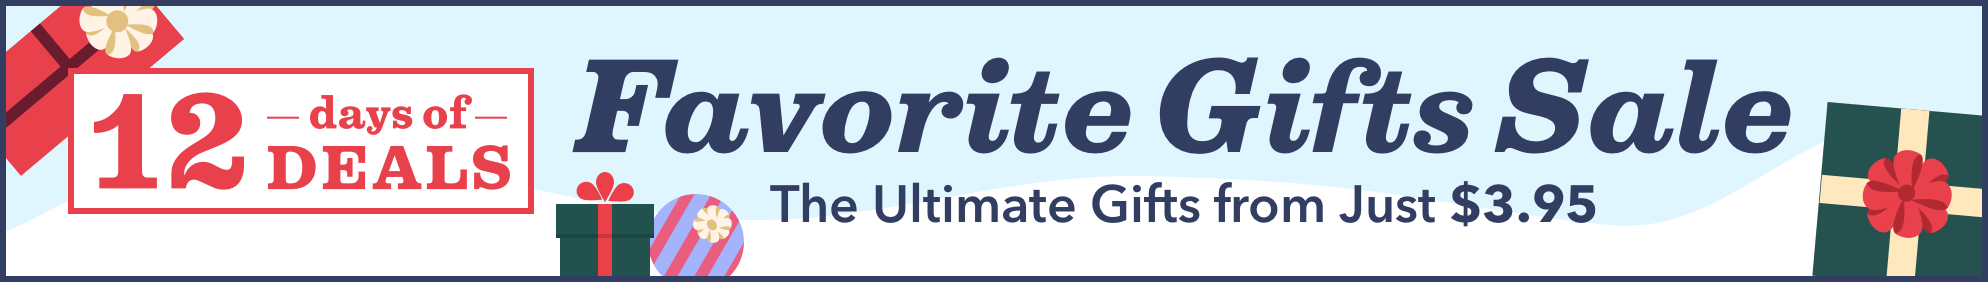 Favorite Gifts Sale 2018